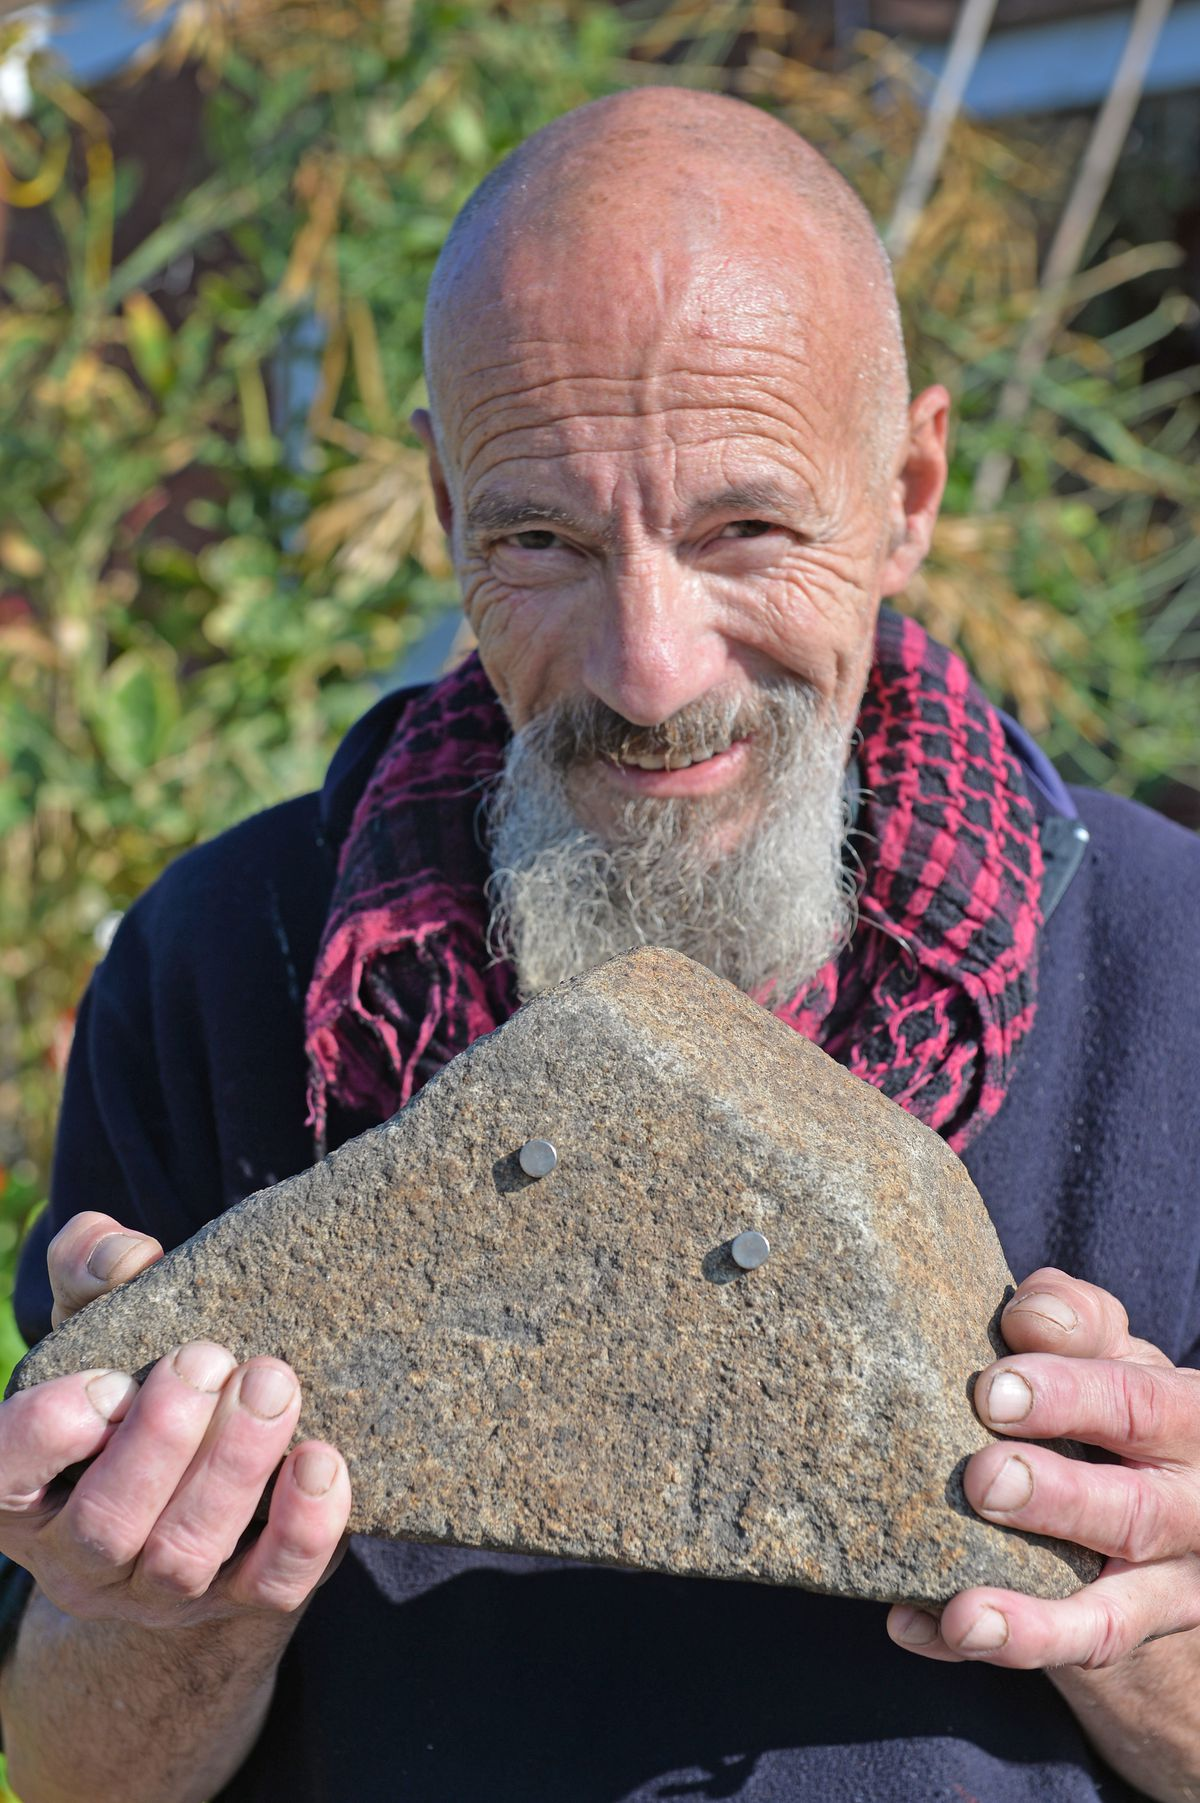 Andrew with what he believes is a remnant of a meteorite